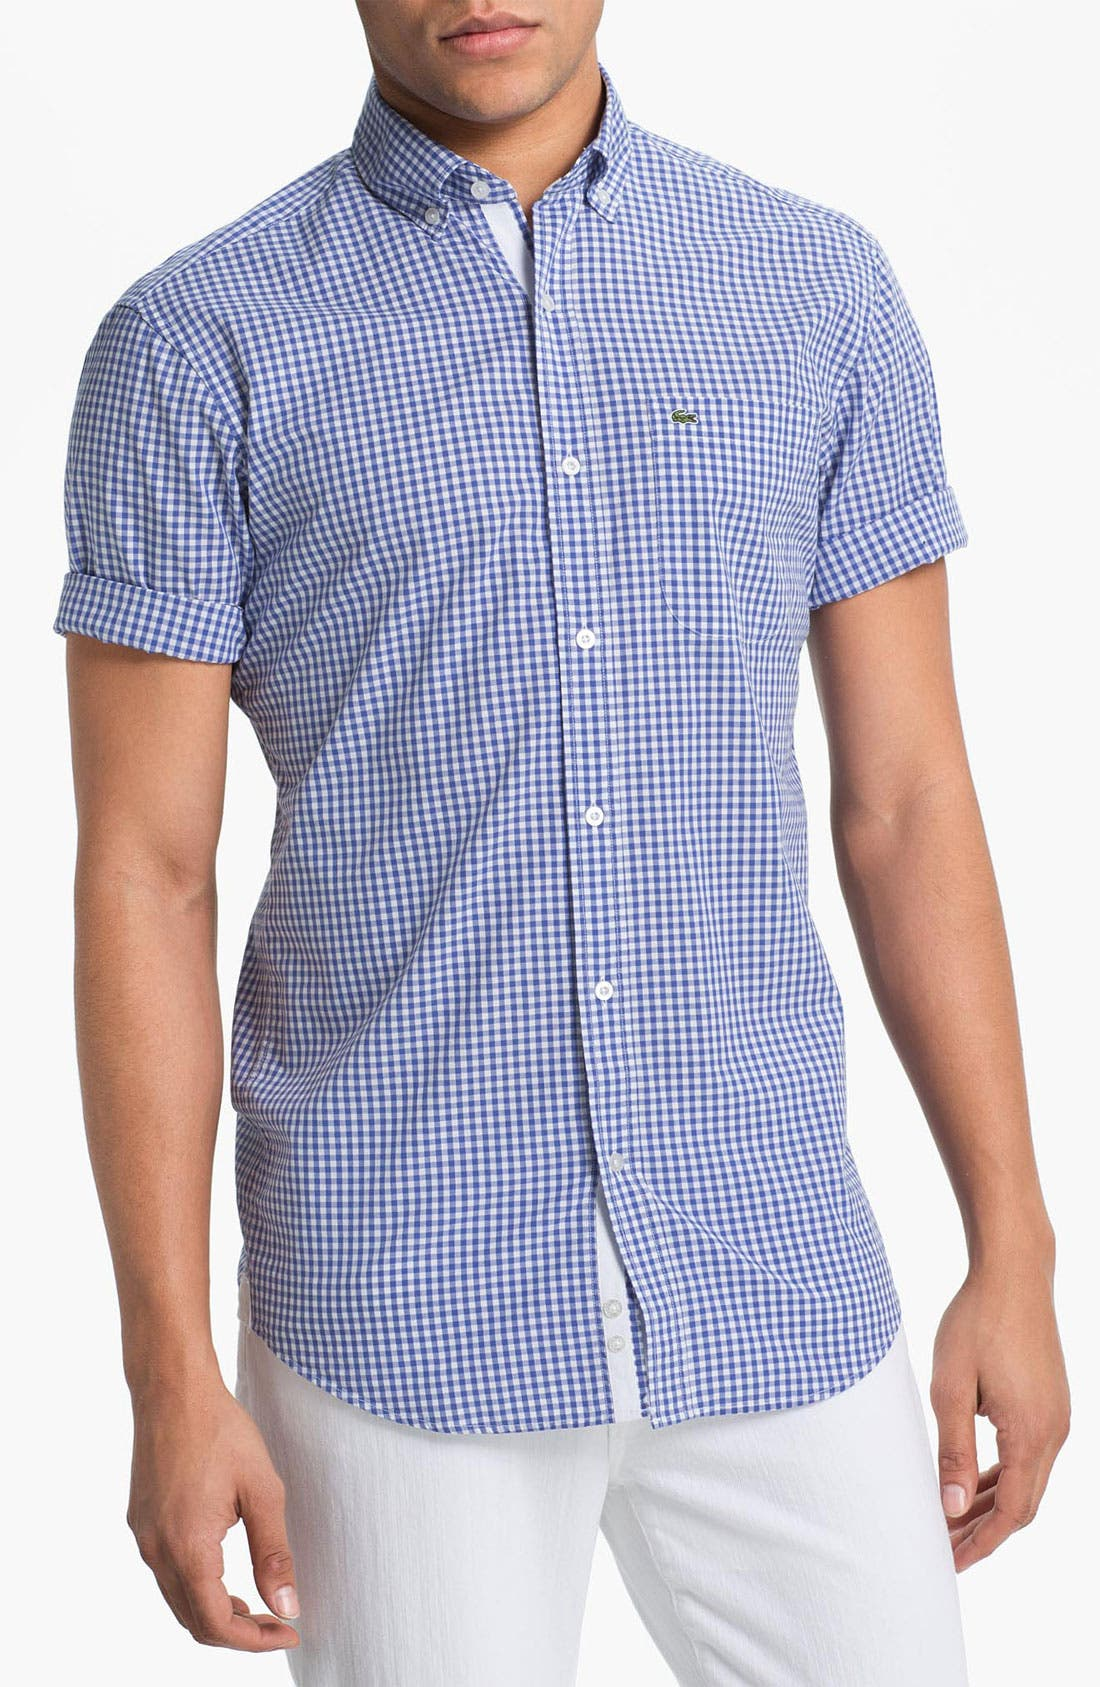 Alternate Image 1 Selected - Lacoste Short Sleeve Button Down Shirt (Tall)